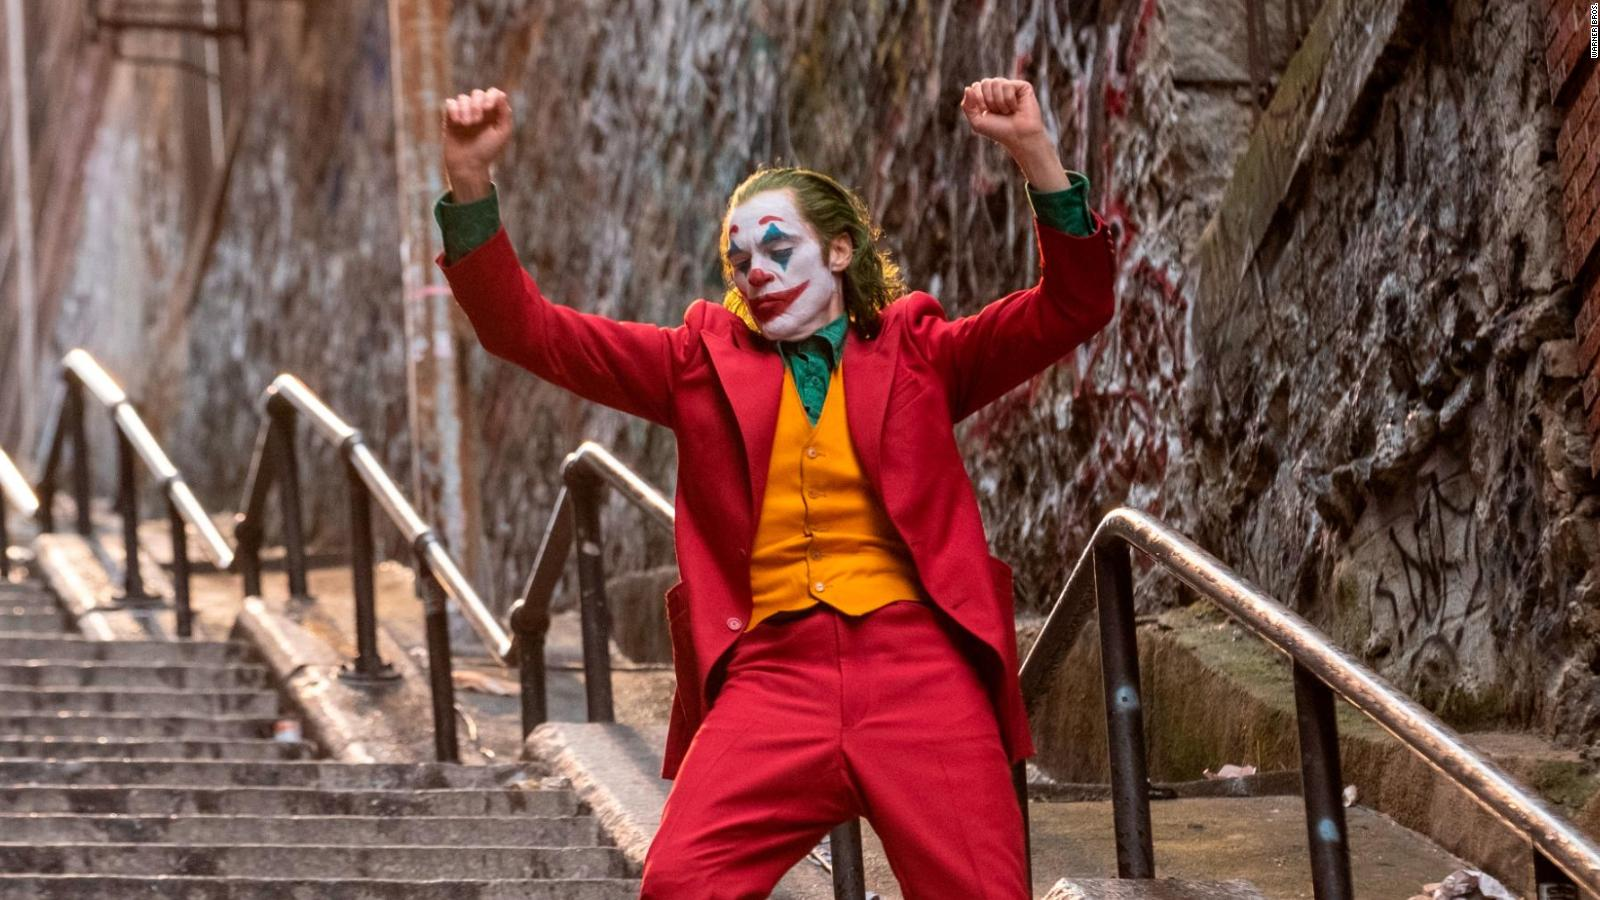 Joker 2 Is Already In Production.